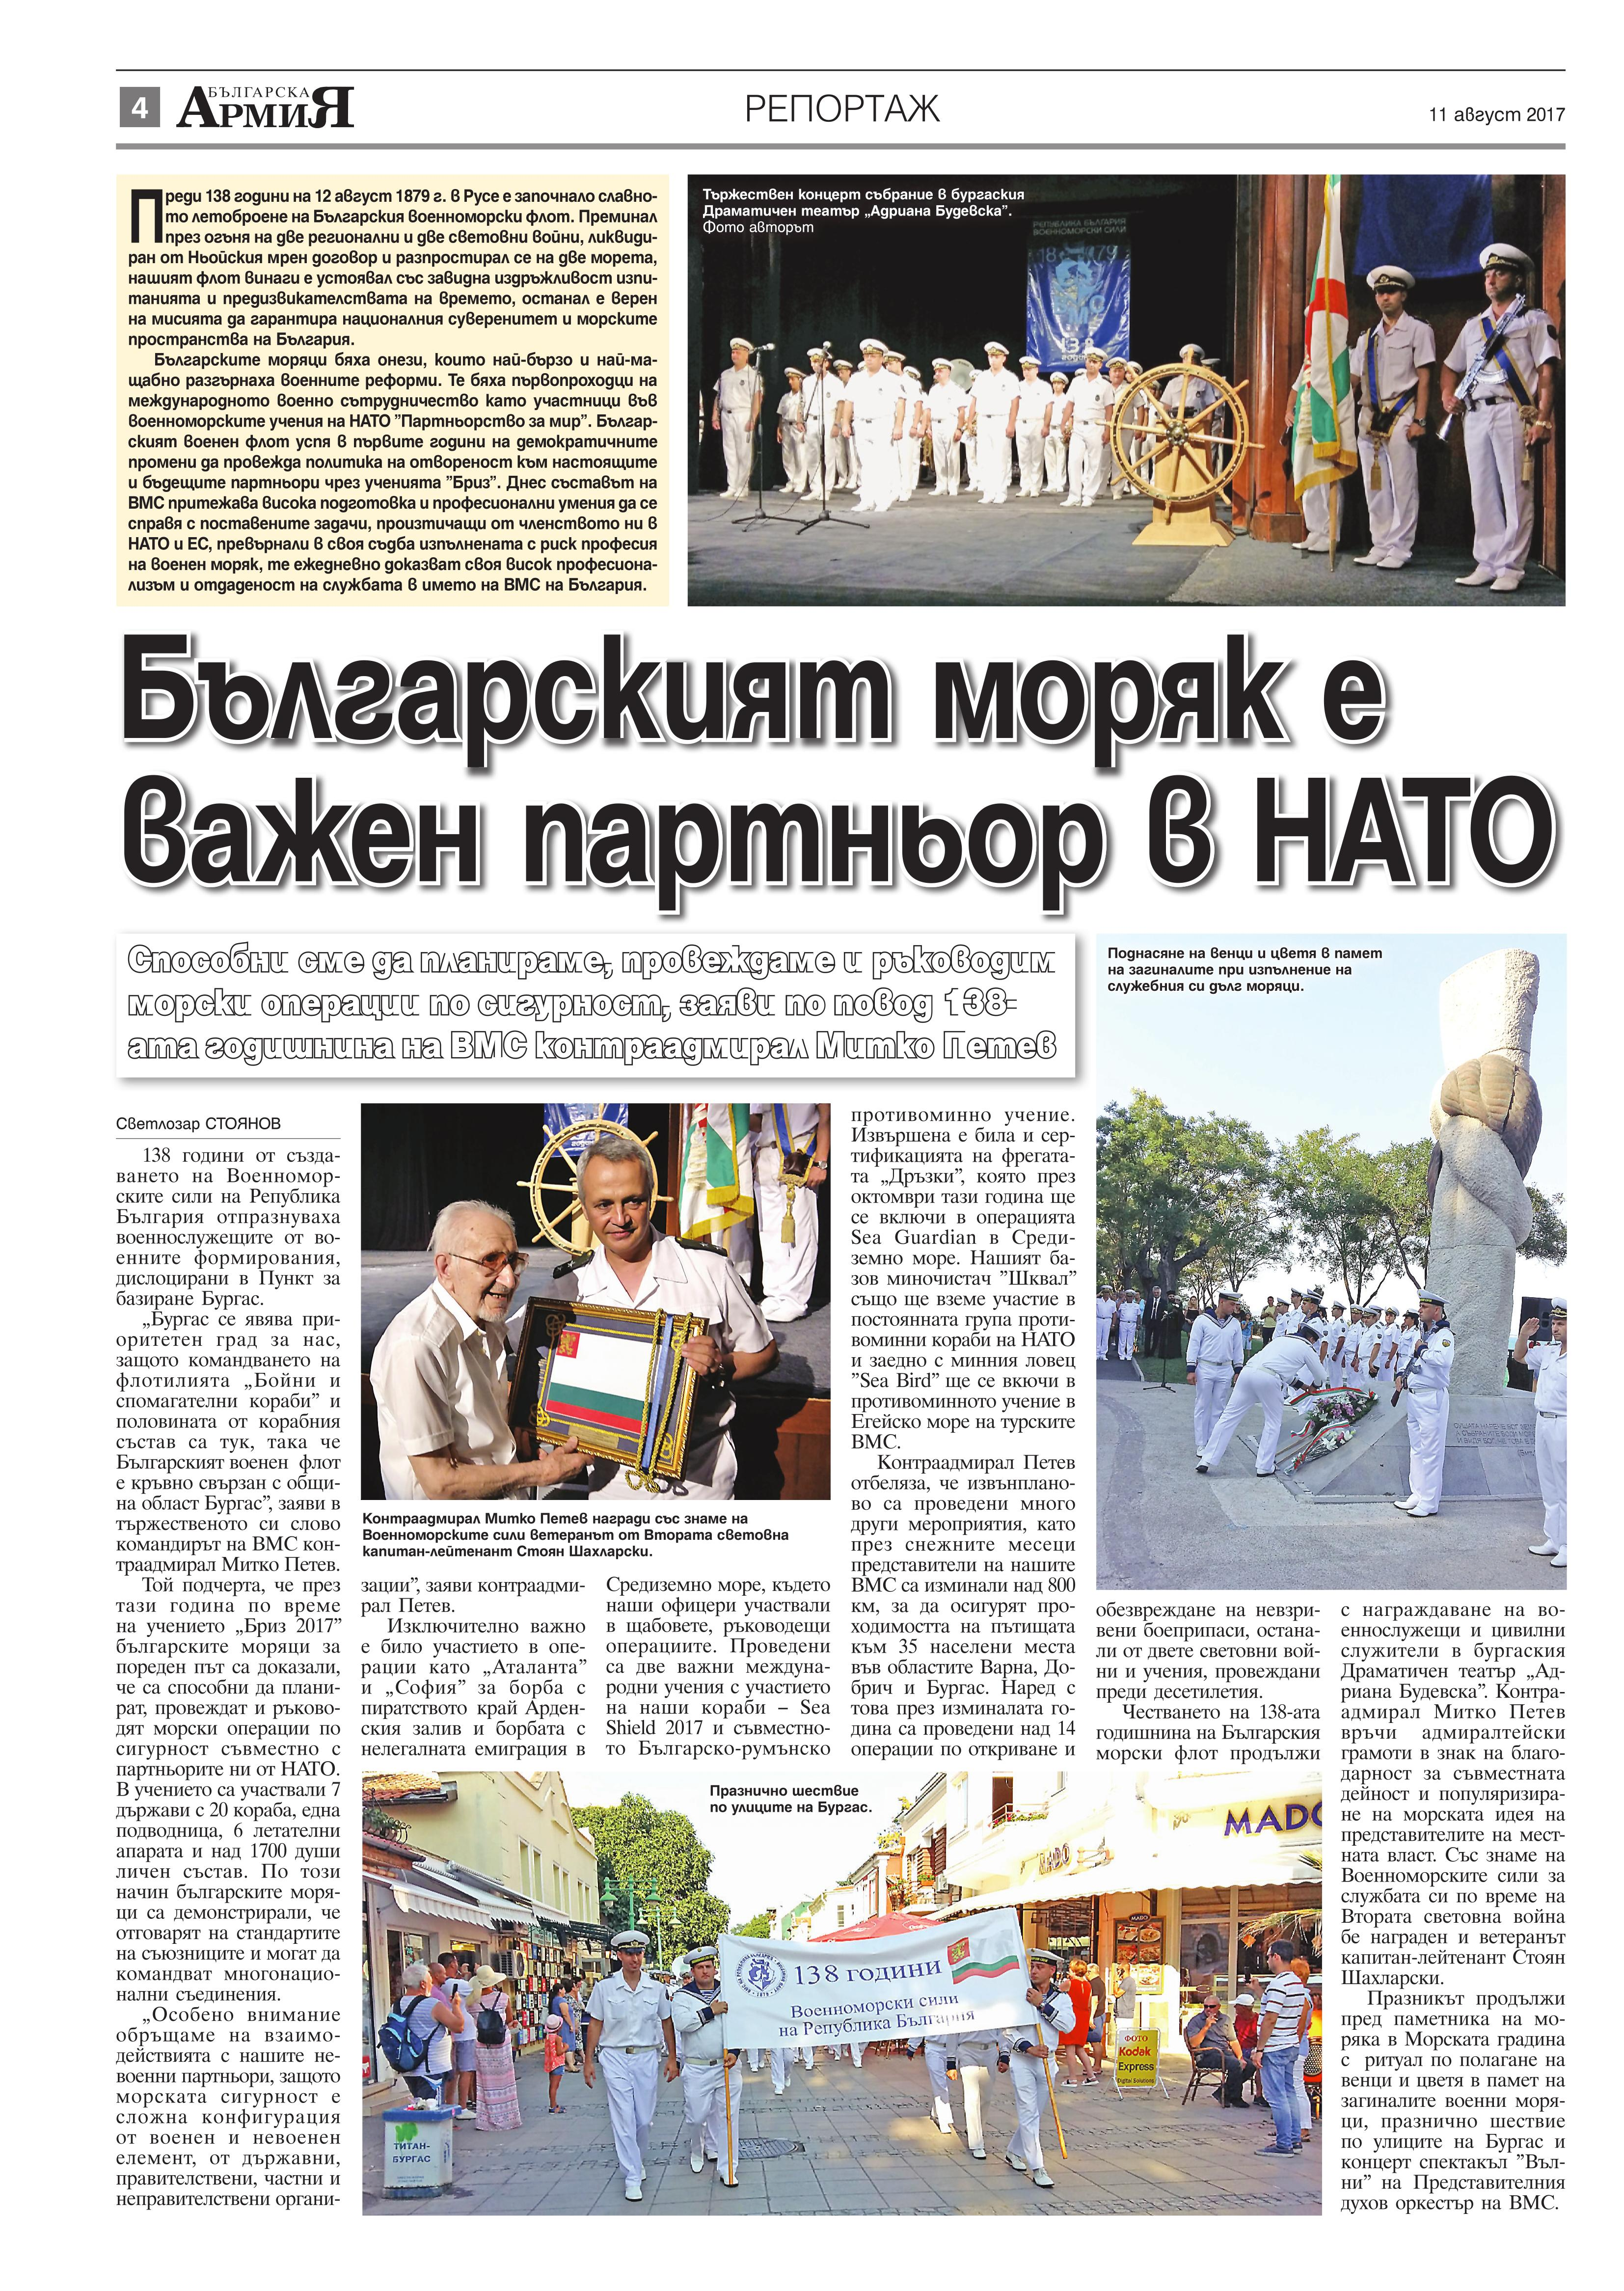 http://armymedia.bg/wp-content/uploads/2015/06/04.page1_-28.jpg